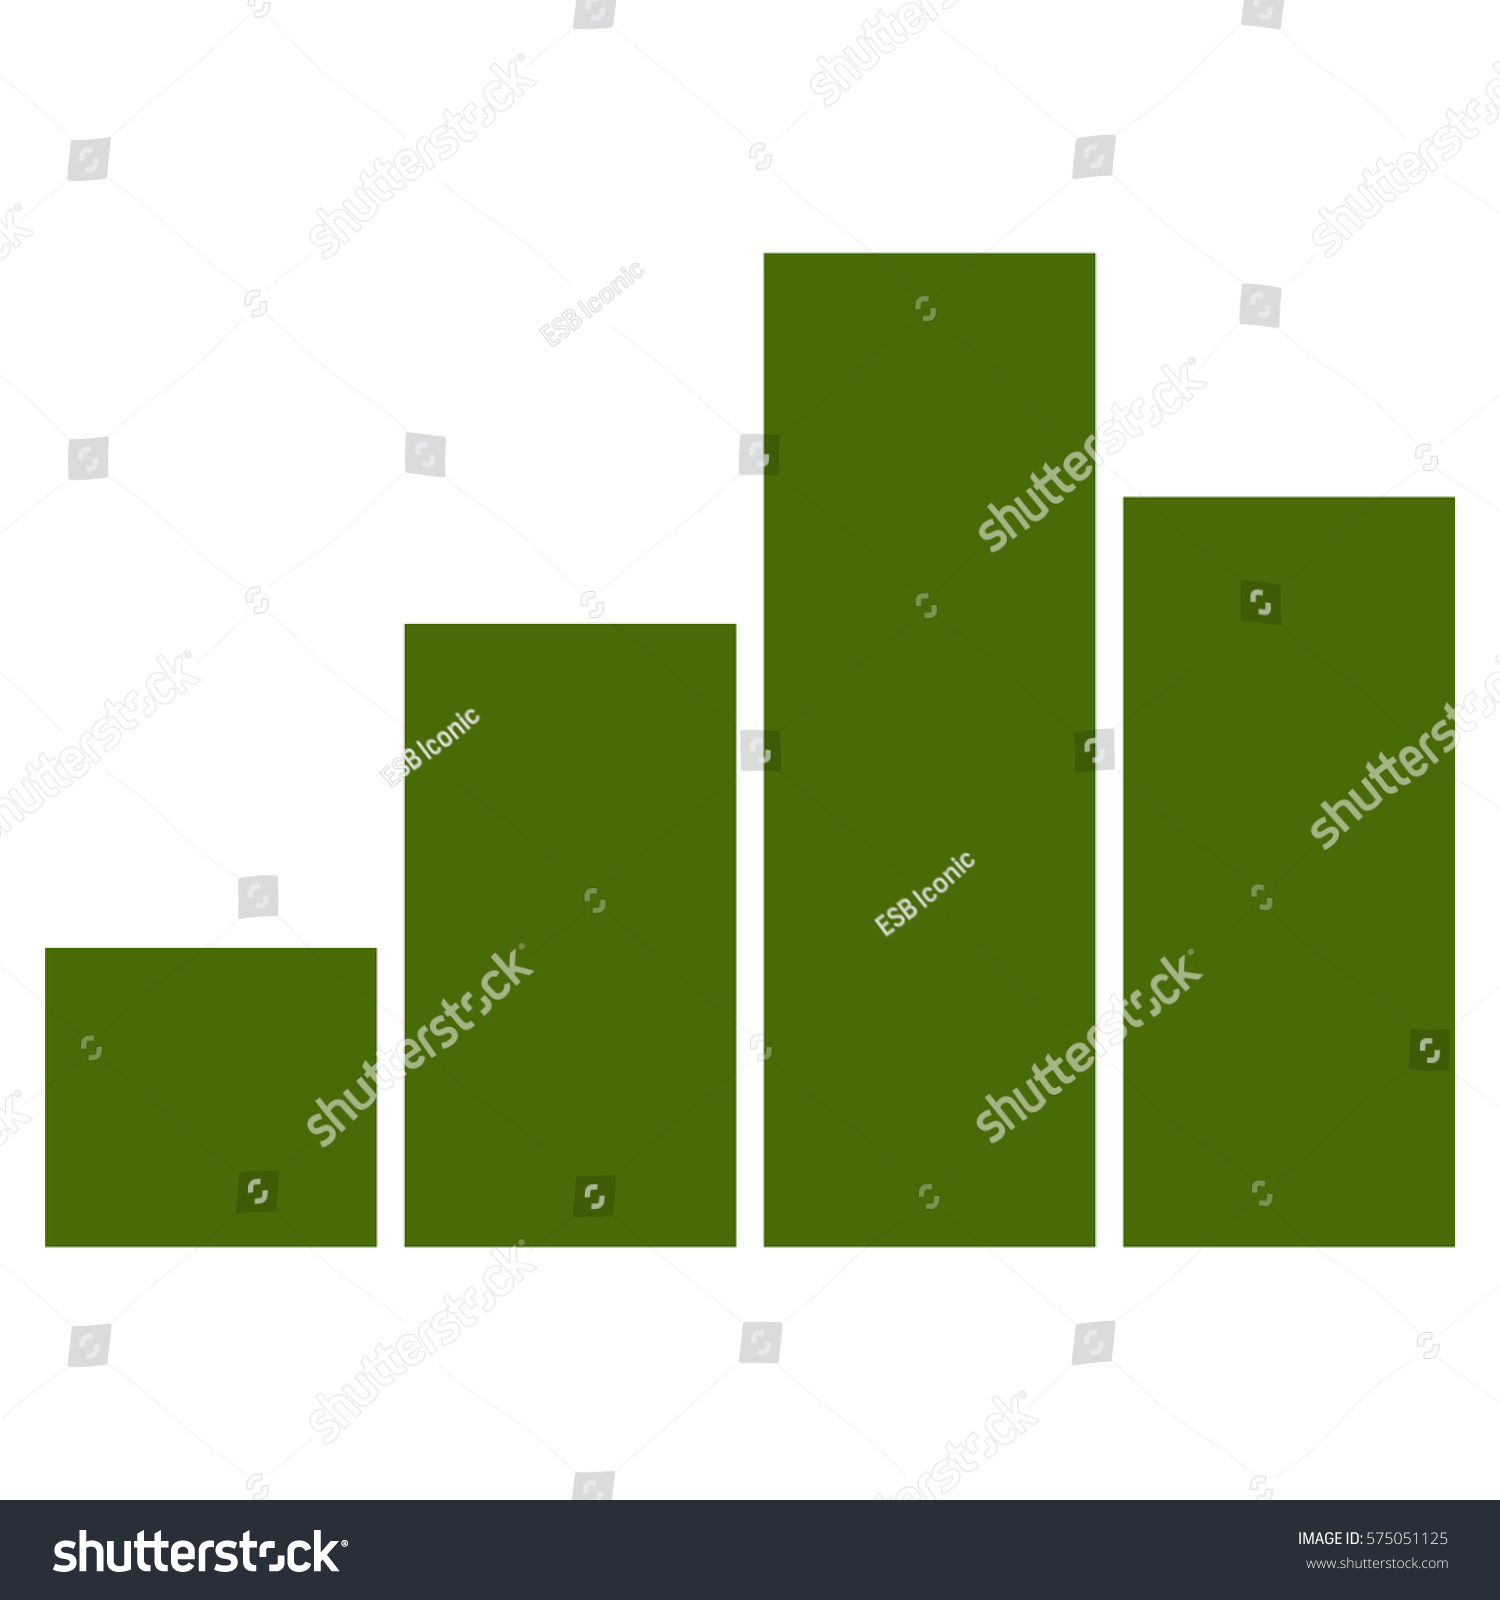 stock vector vector illustration of bar chart in green icon 575051125 swot icon wiring diagrams wiring diagrams flat design letters for th8320r1003 wiring diagrams at gsmx.co